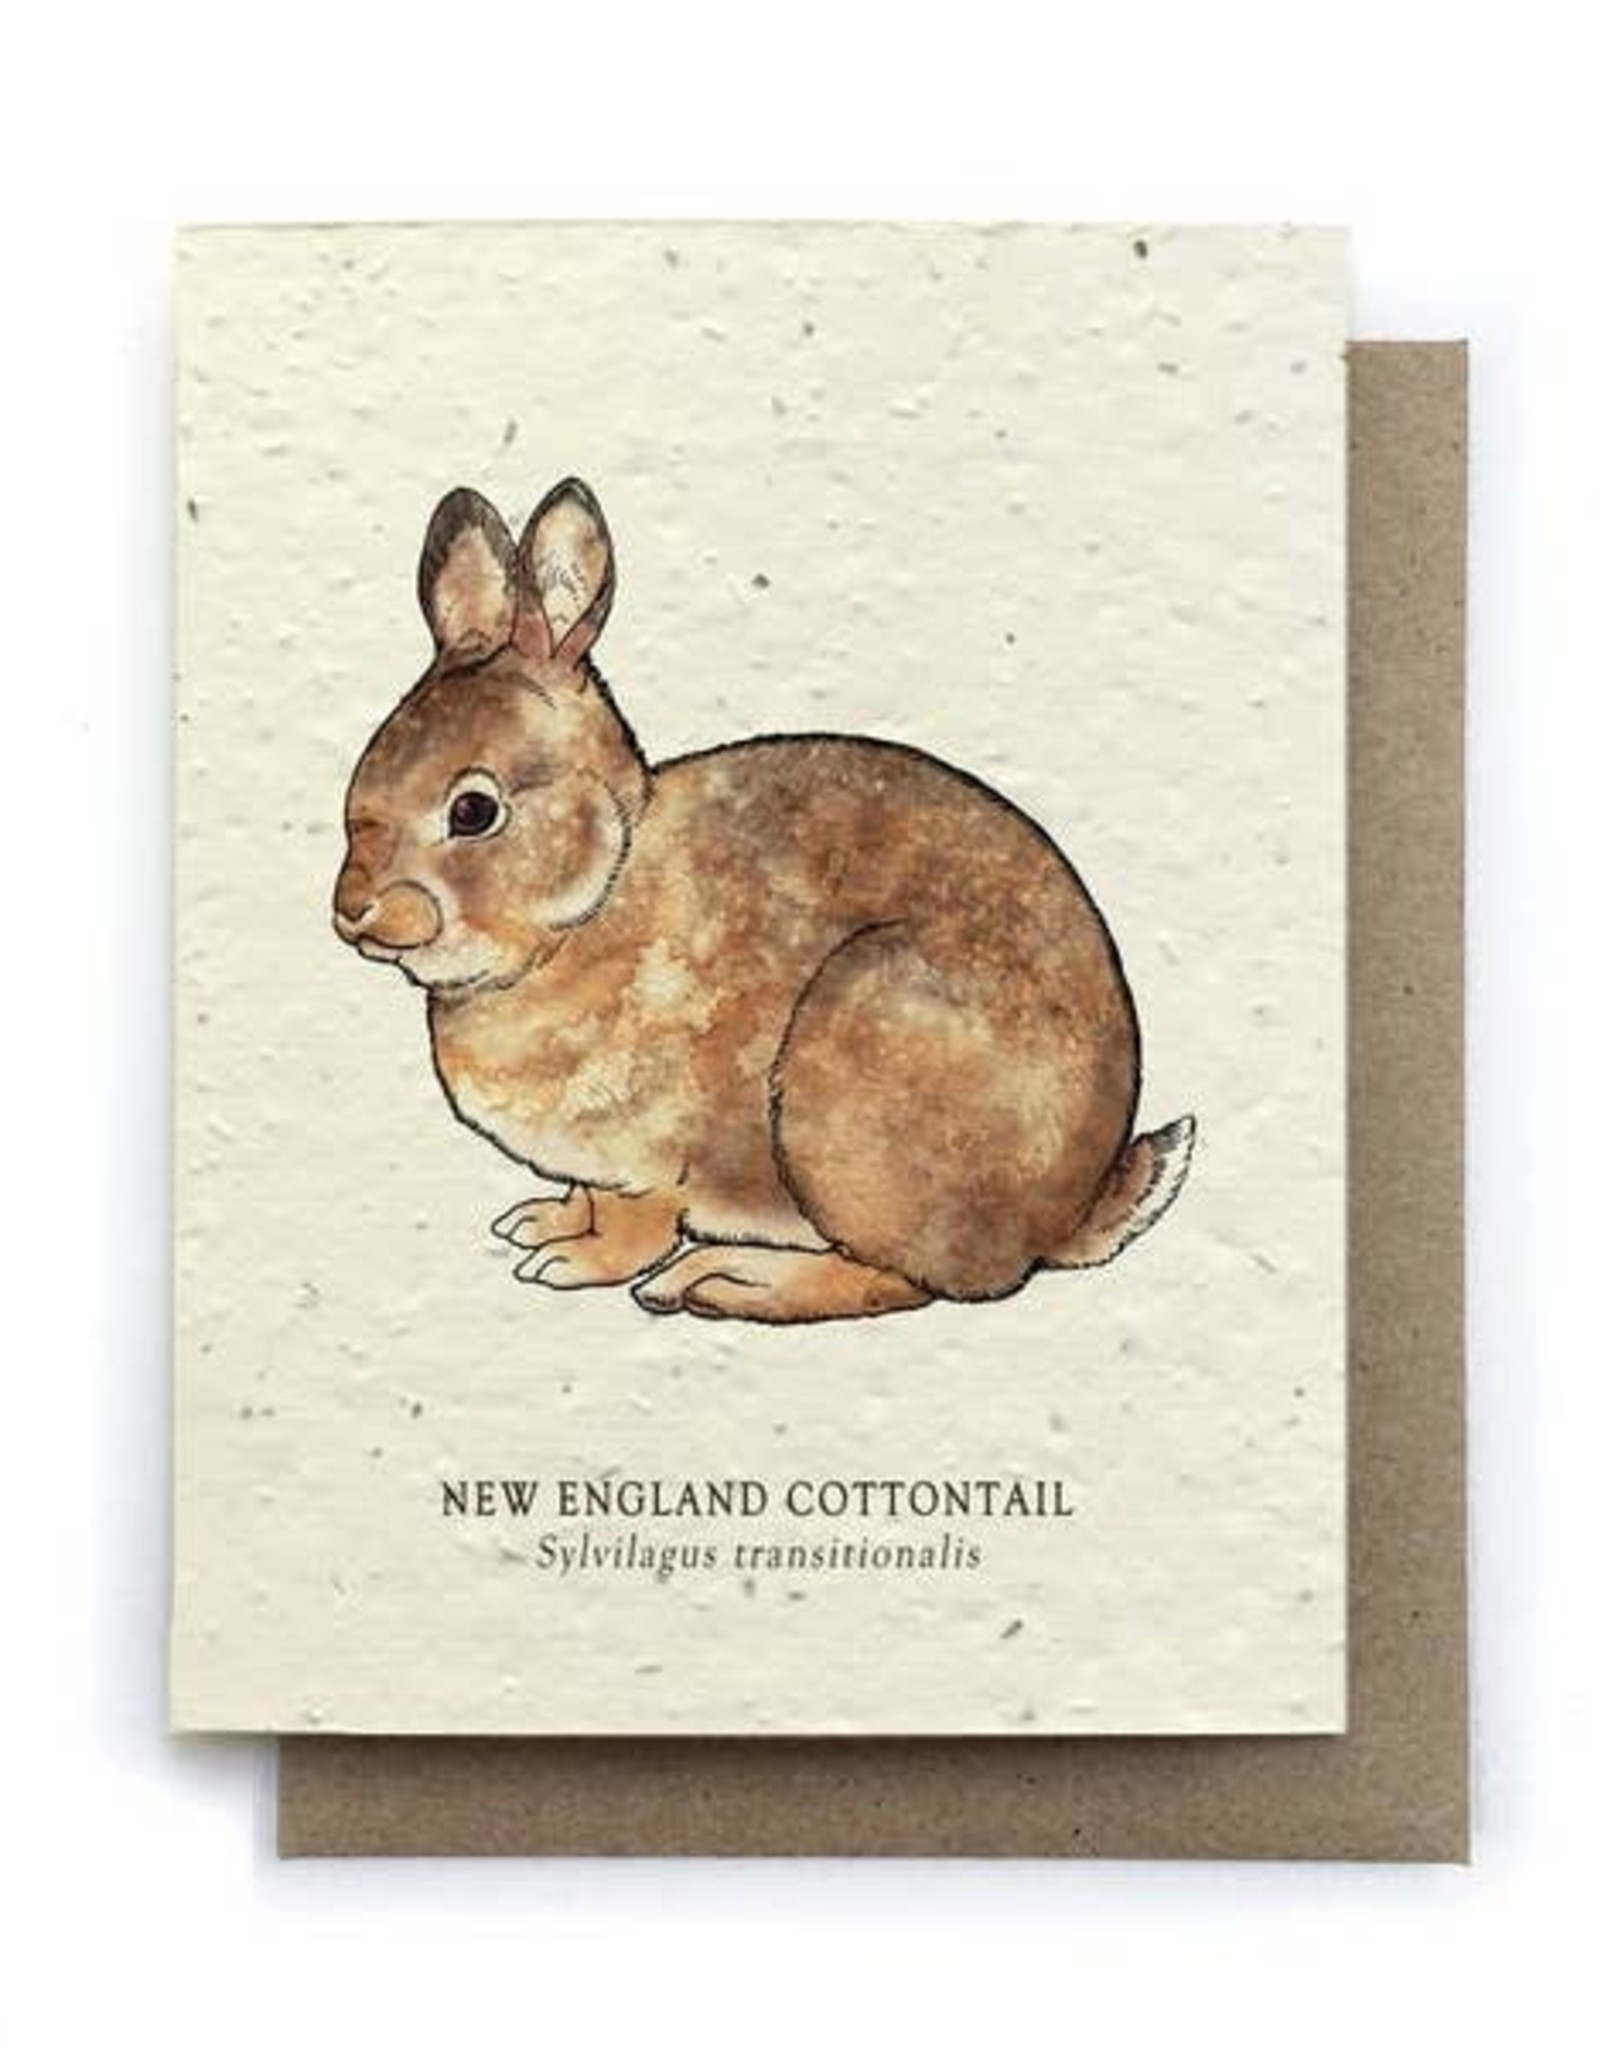 LeBLANC finds Cottontail Rabbit Greeting Cards - Plantable Seed Paper